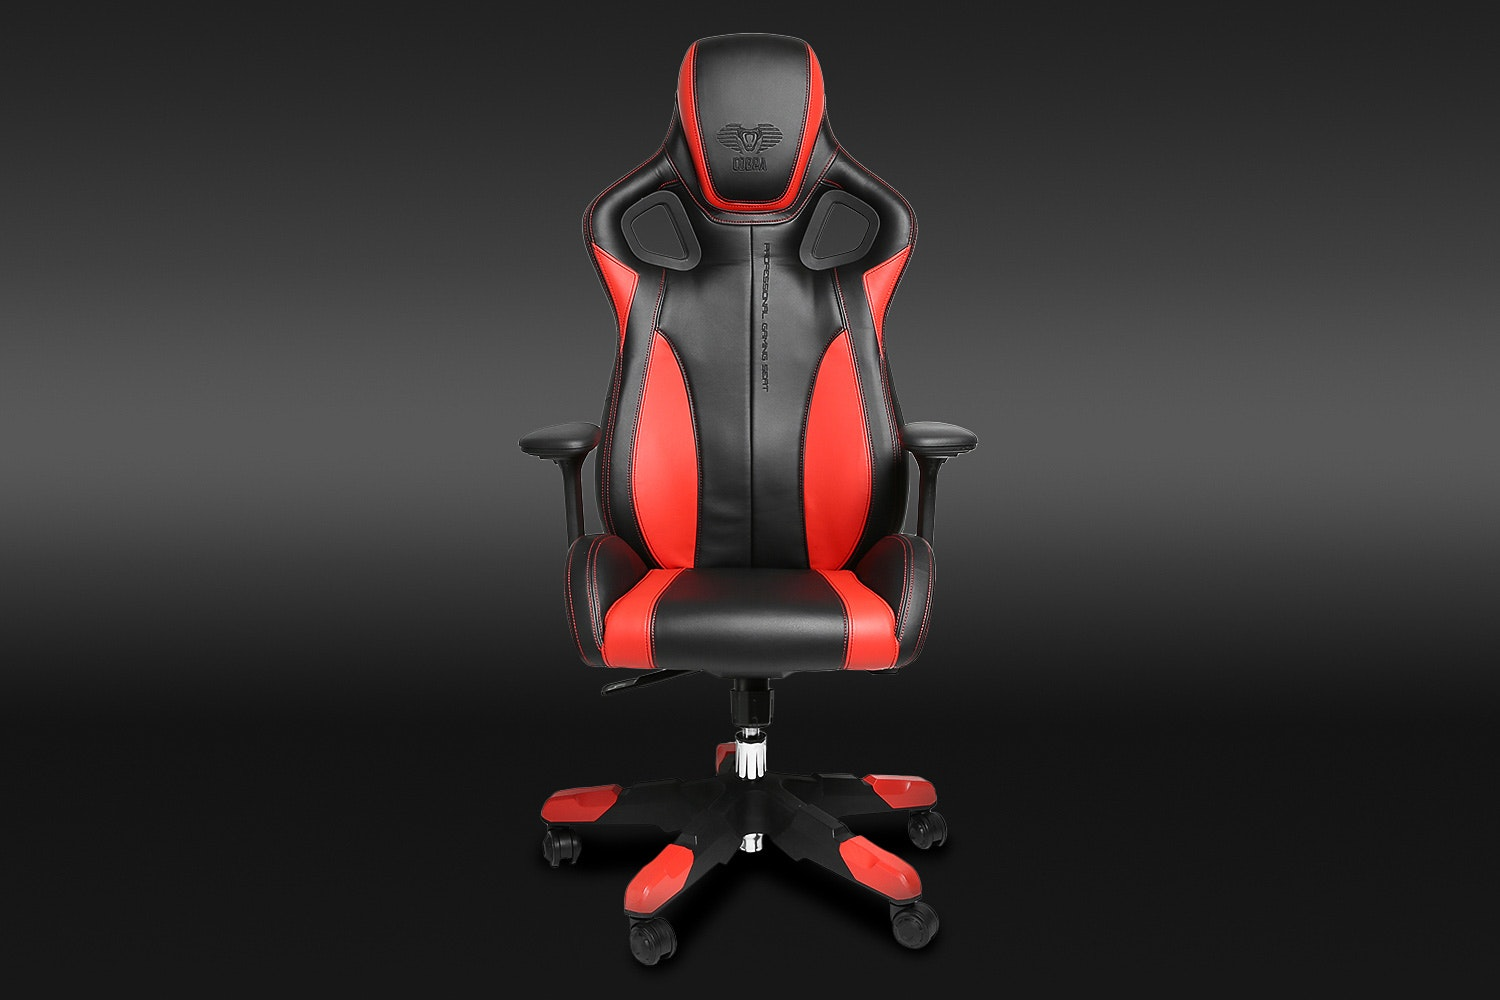 E-Blue Gaming Chairs - Massdrop Exclusive